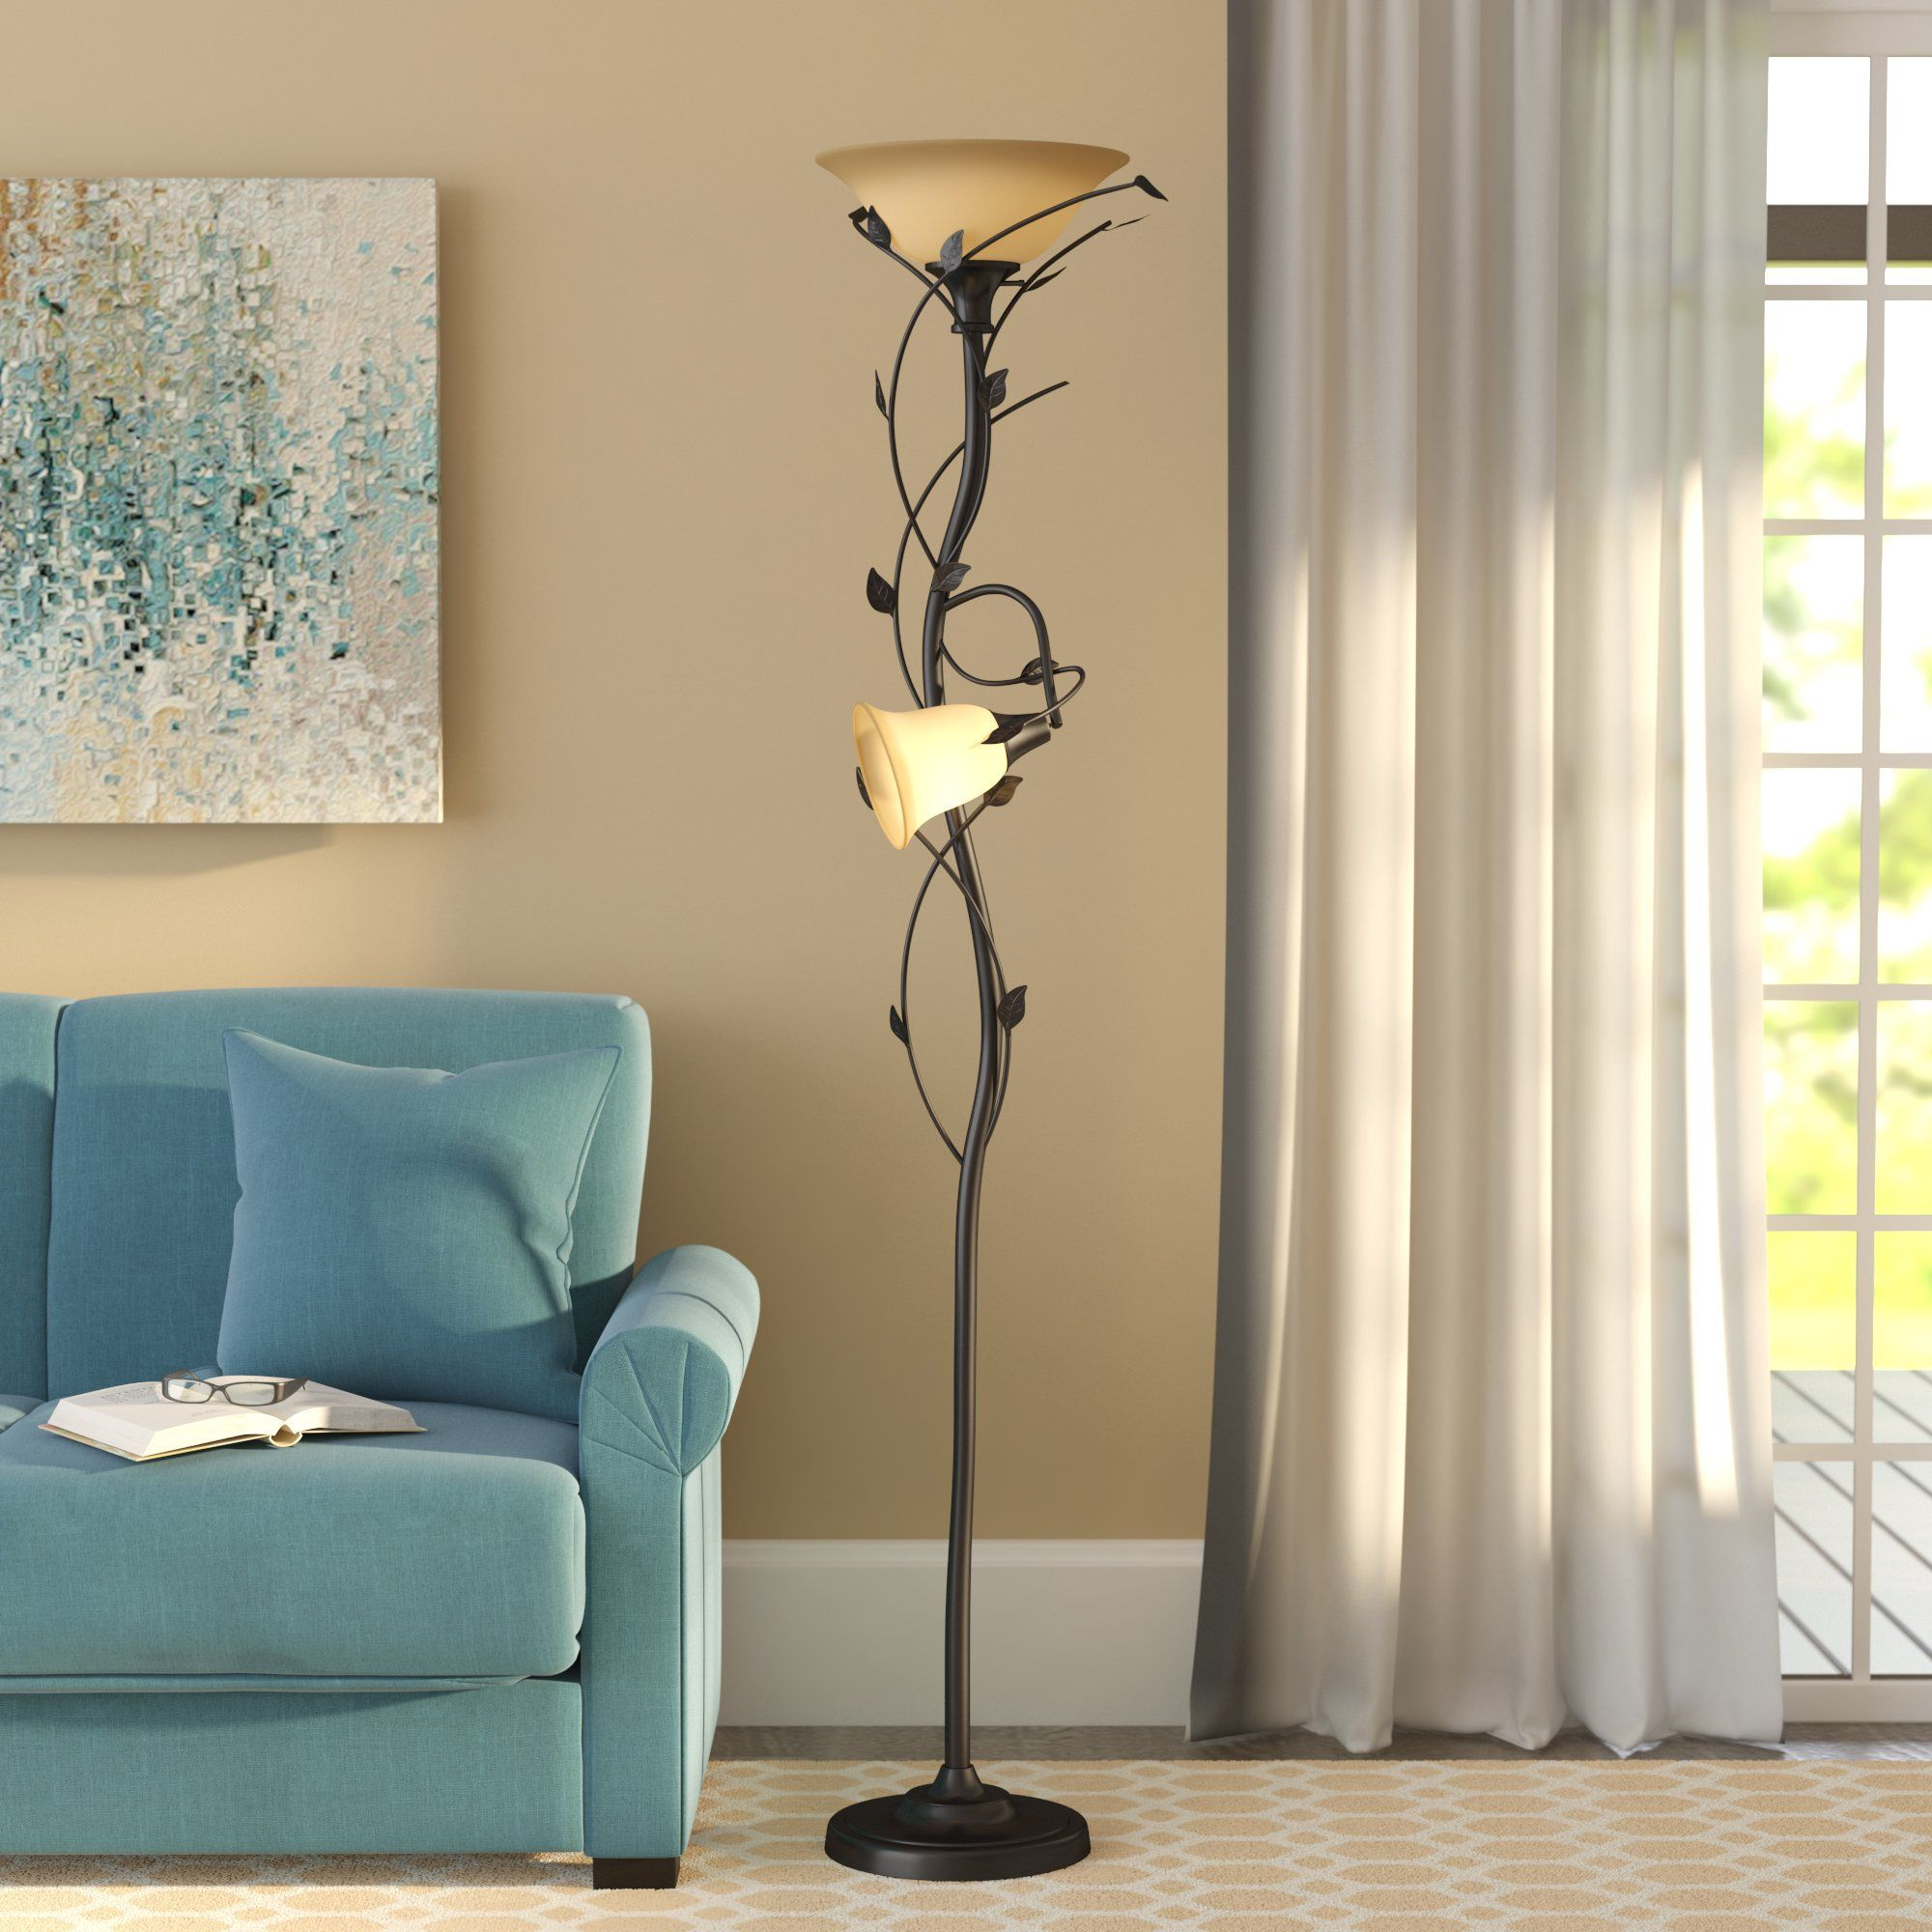 Alcott Hill Crystal 72 Quot Led Torchiere Floor Lamp Amp Reviews Wayfair New Tv Room Torchiere